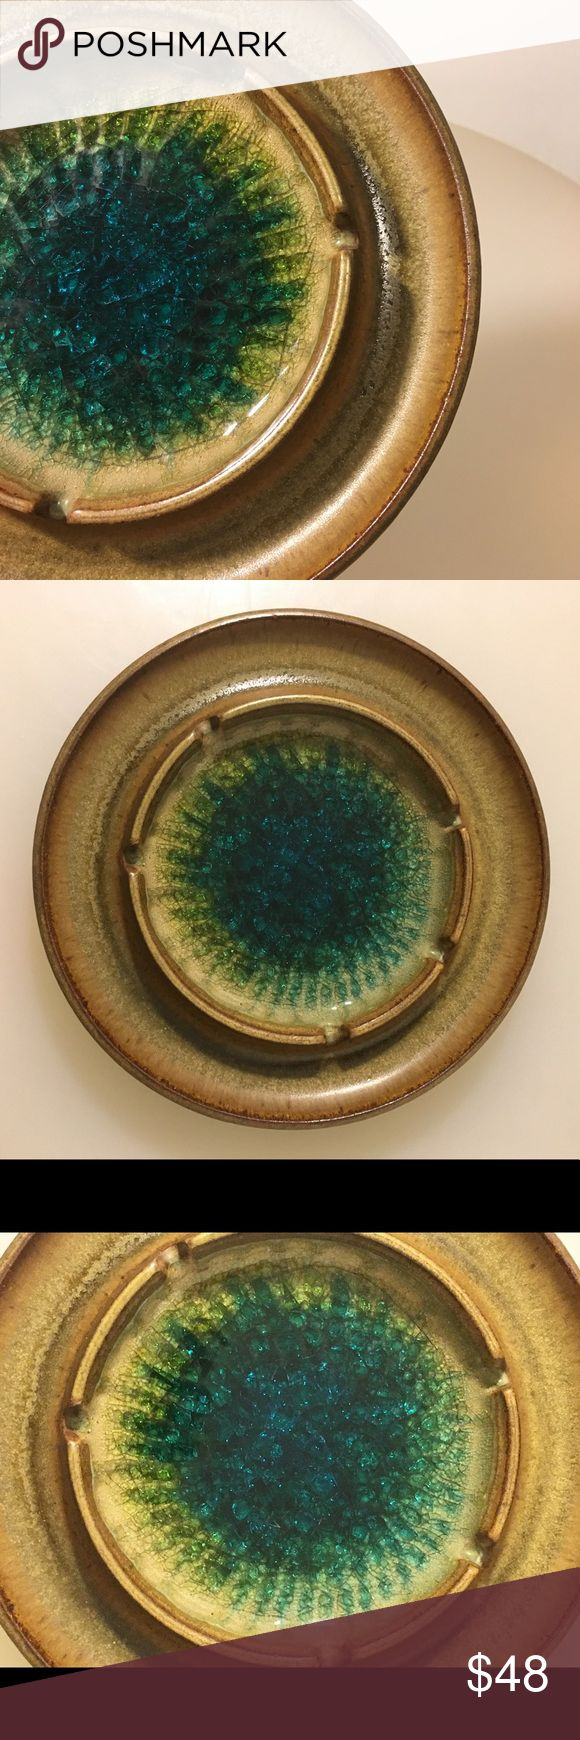 Vintage Robert Maxwell Ceramic Ashtray This piece is a treasure! Robert Maxwell's pottery is well known and very collectible. This ashtray shows why with a great matte brown glaze and amazing bluish green glass to accentuate the piece! Perfect for any mid century modern enthusiast or anyone with great taste! Measures 7.5 inches wide Vintage Other